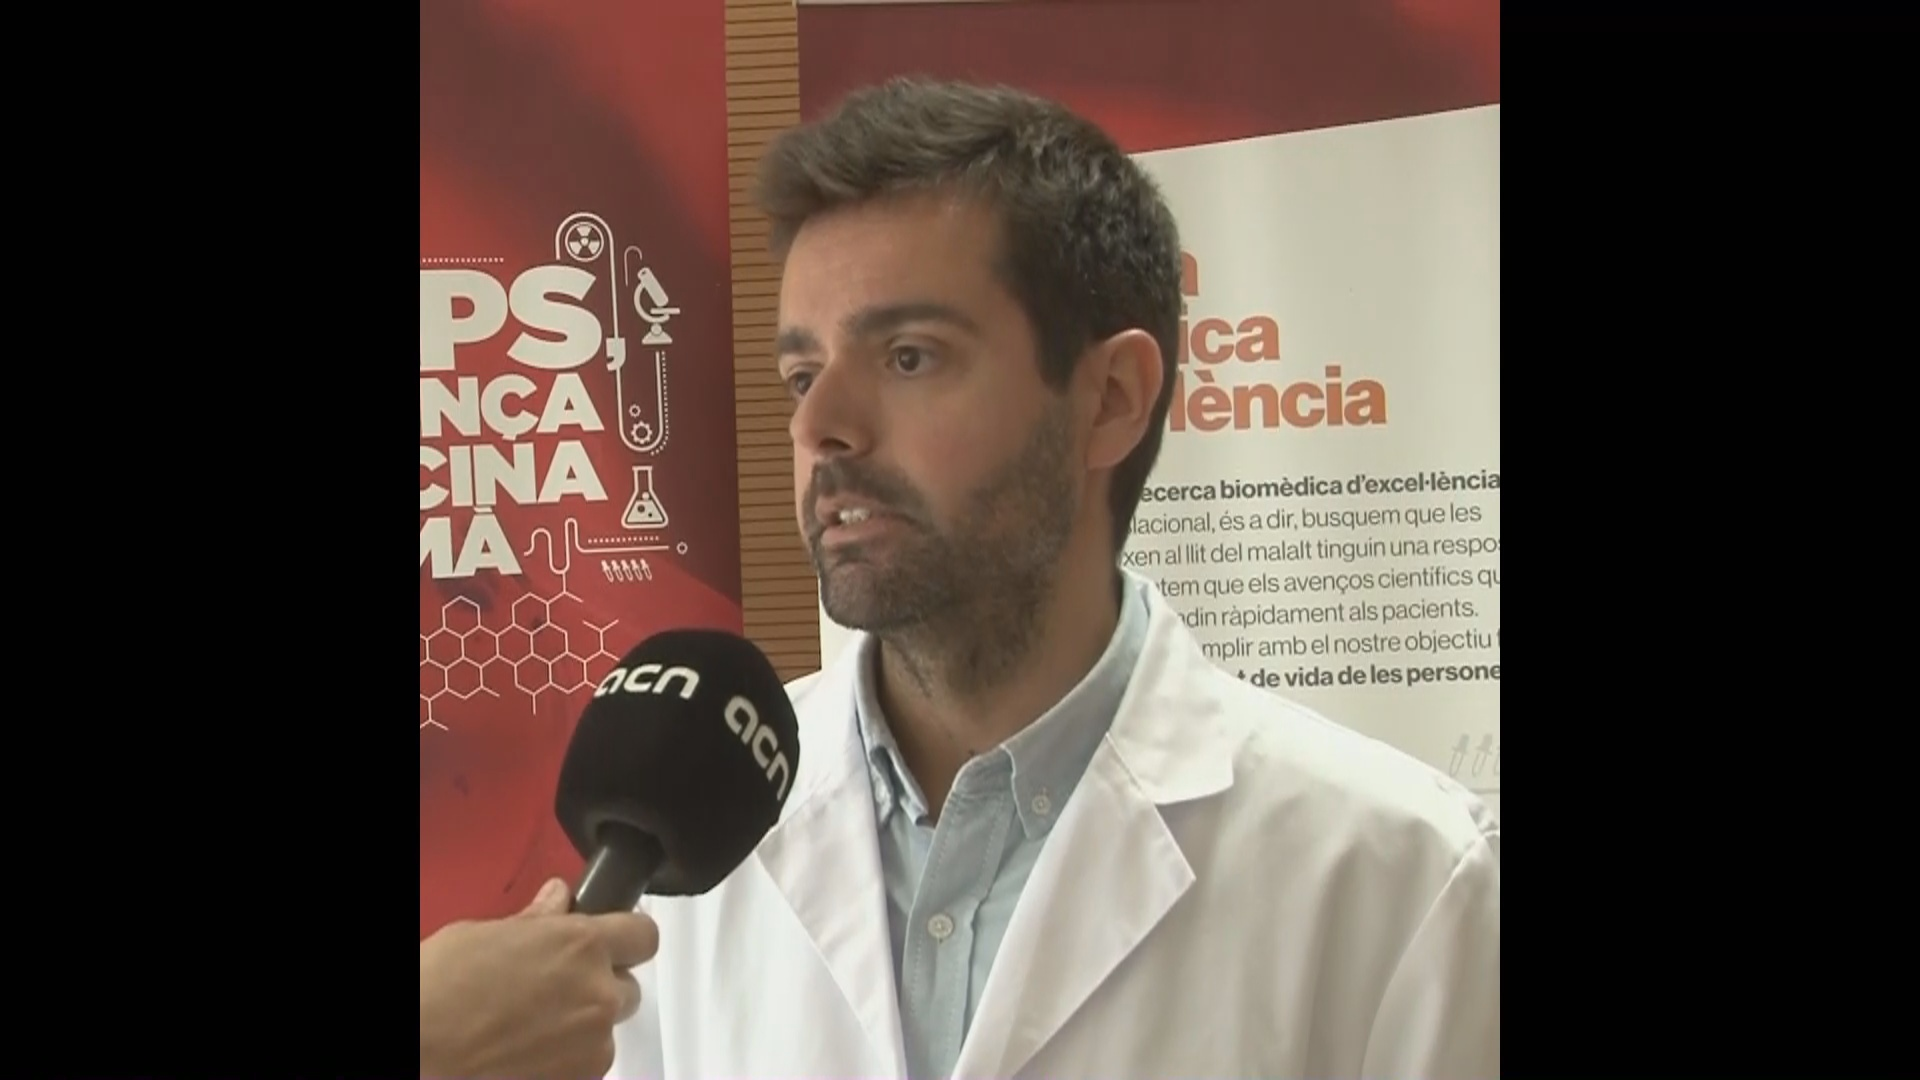 Jordi Gracia-Sancho, head of Vascular Liver Biology at IDIBAPS